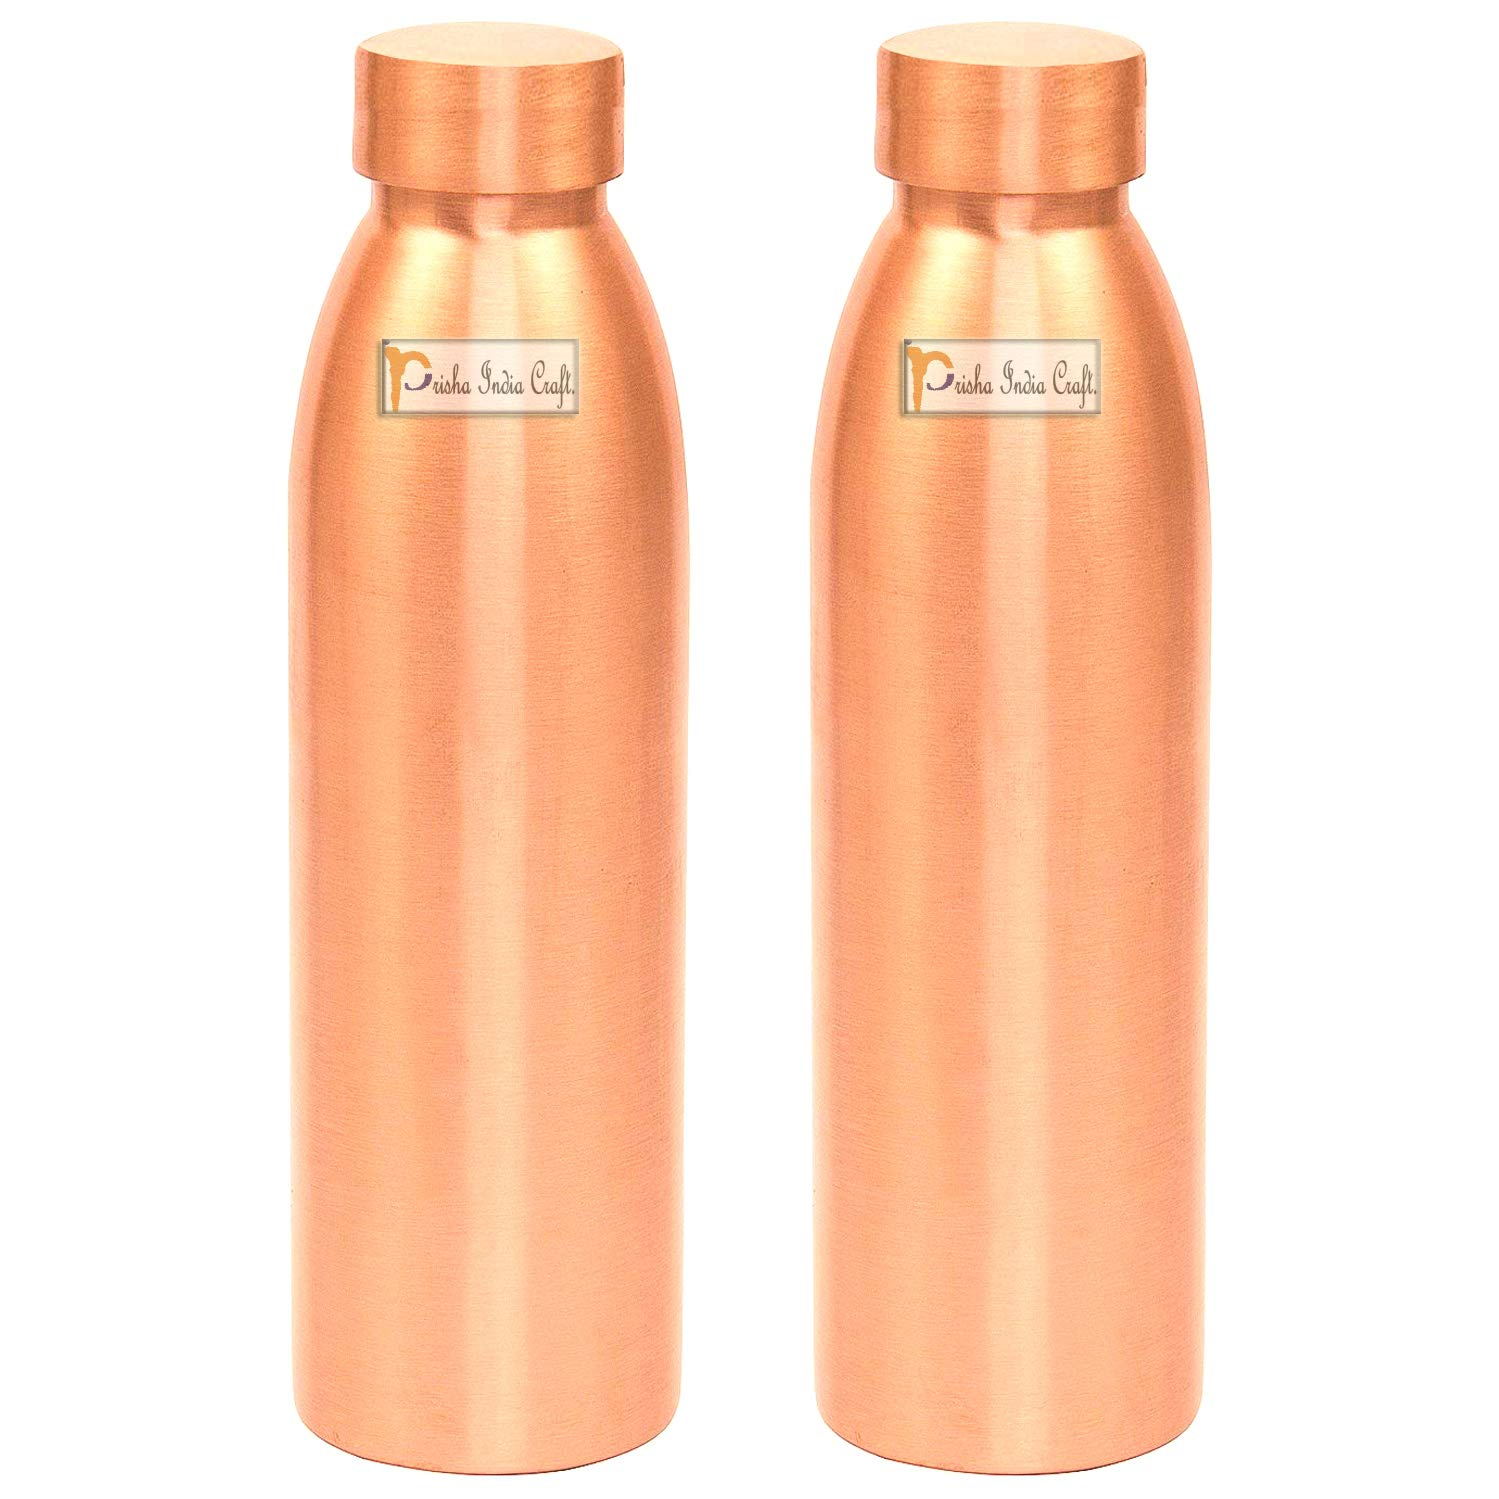 Prisha India Craft Seam Less Pure Copper Water Bottle New Style Storage Water, Travel Essential, Yoga, Copper Bottles | Capacity 1000 ML | Set of 2